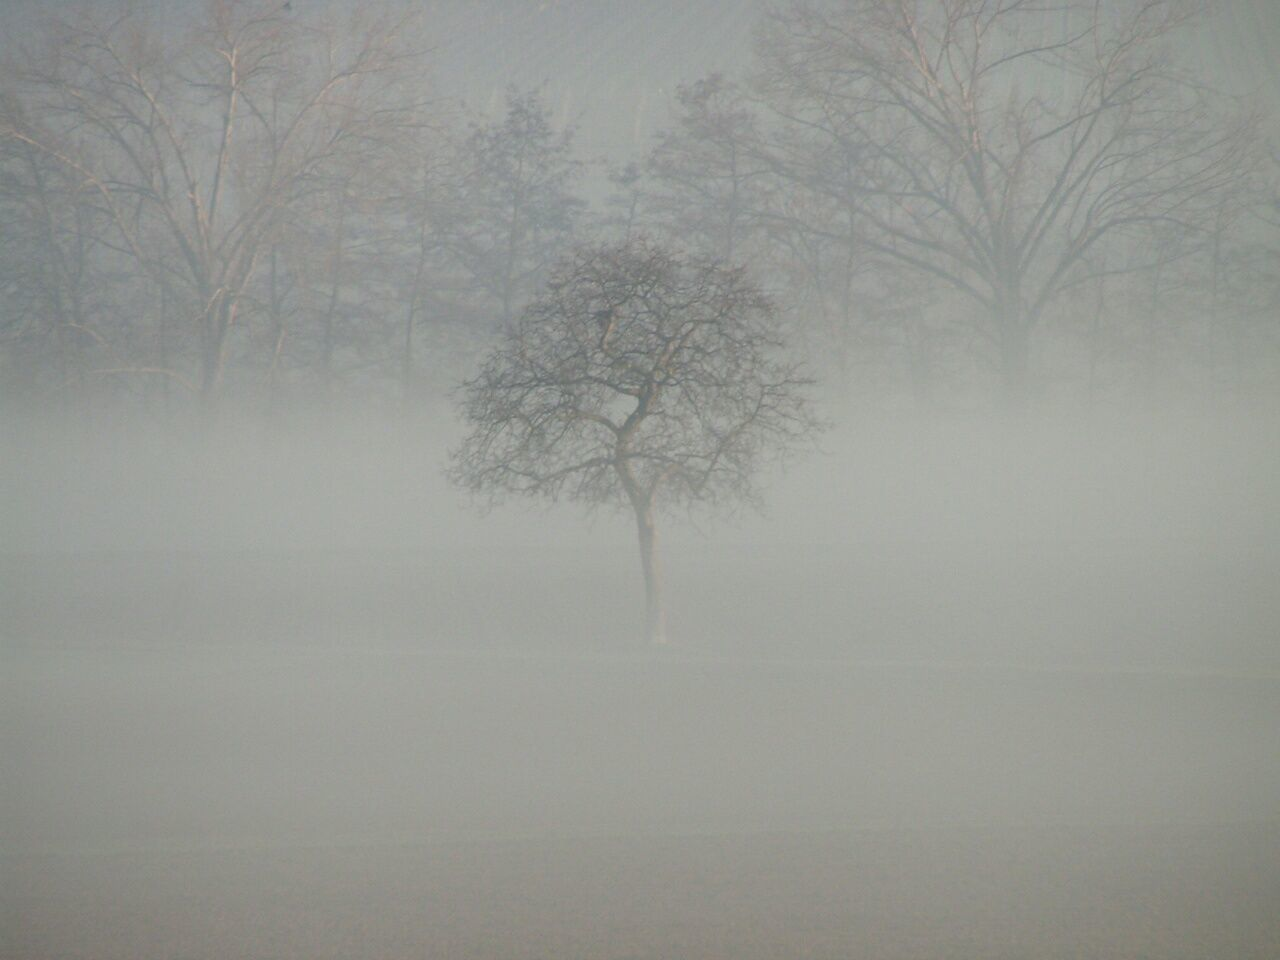 tree, tranquility, cold temperature, mist, beauty in nature, tranquil scene, bare tree, landscape, winter, nature, solitude, branch, lone, weather, fog, hazy, remote, outdoors, no people, scenics, day, sky